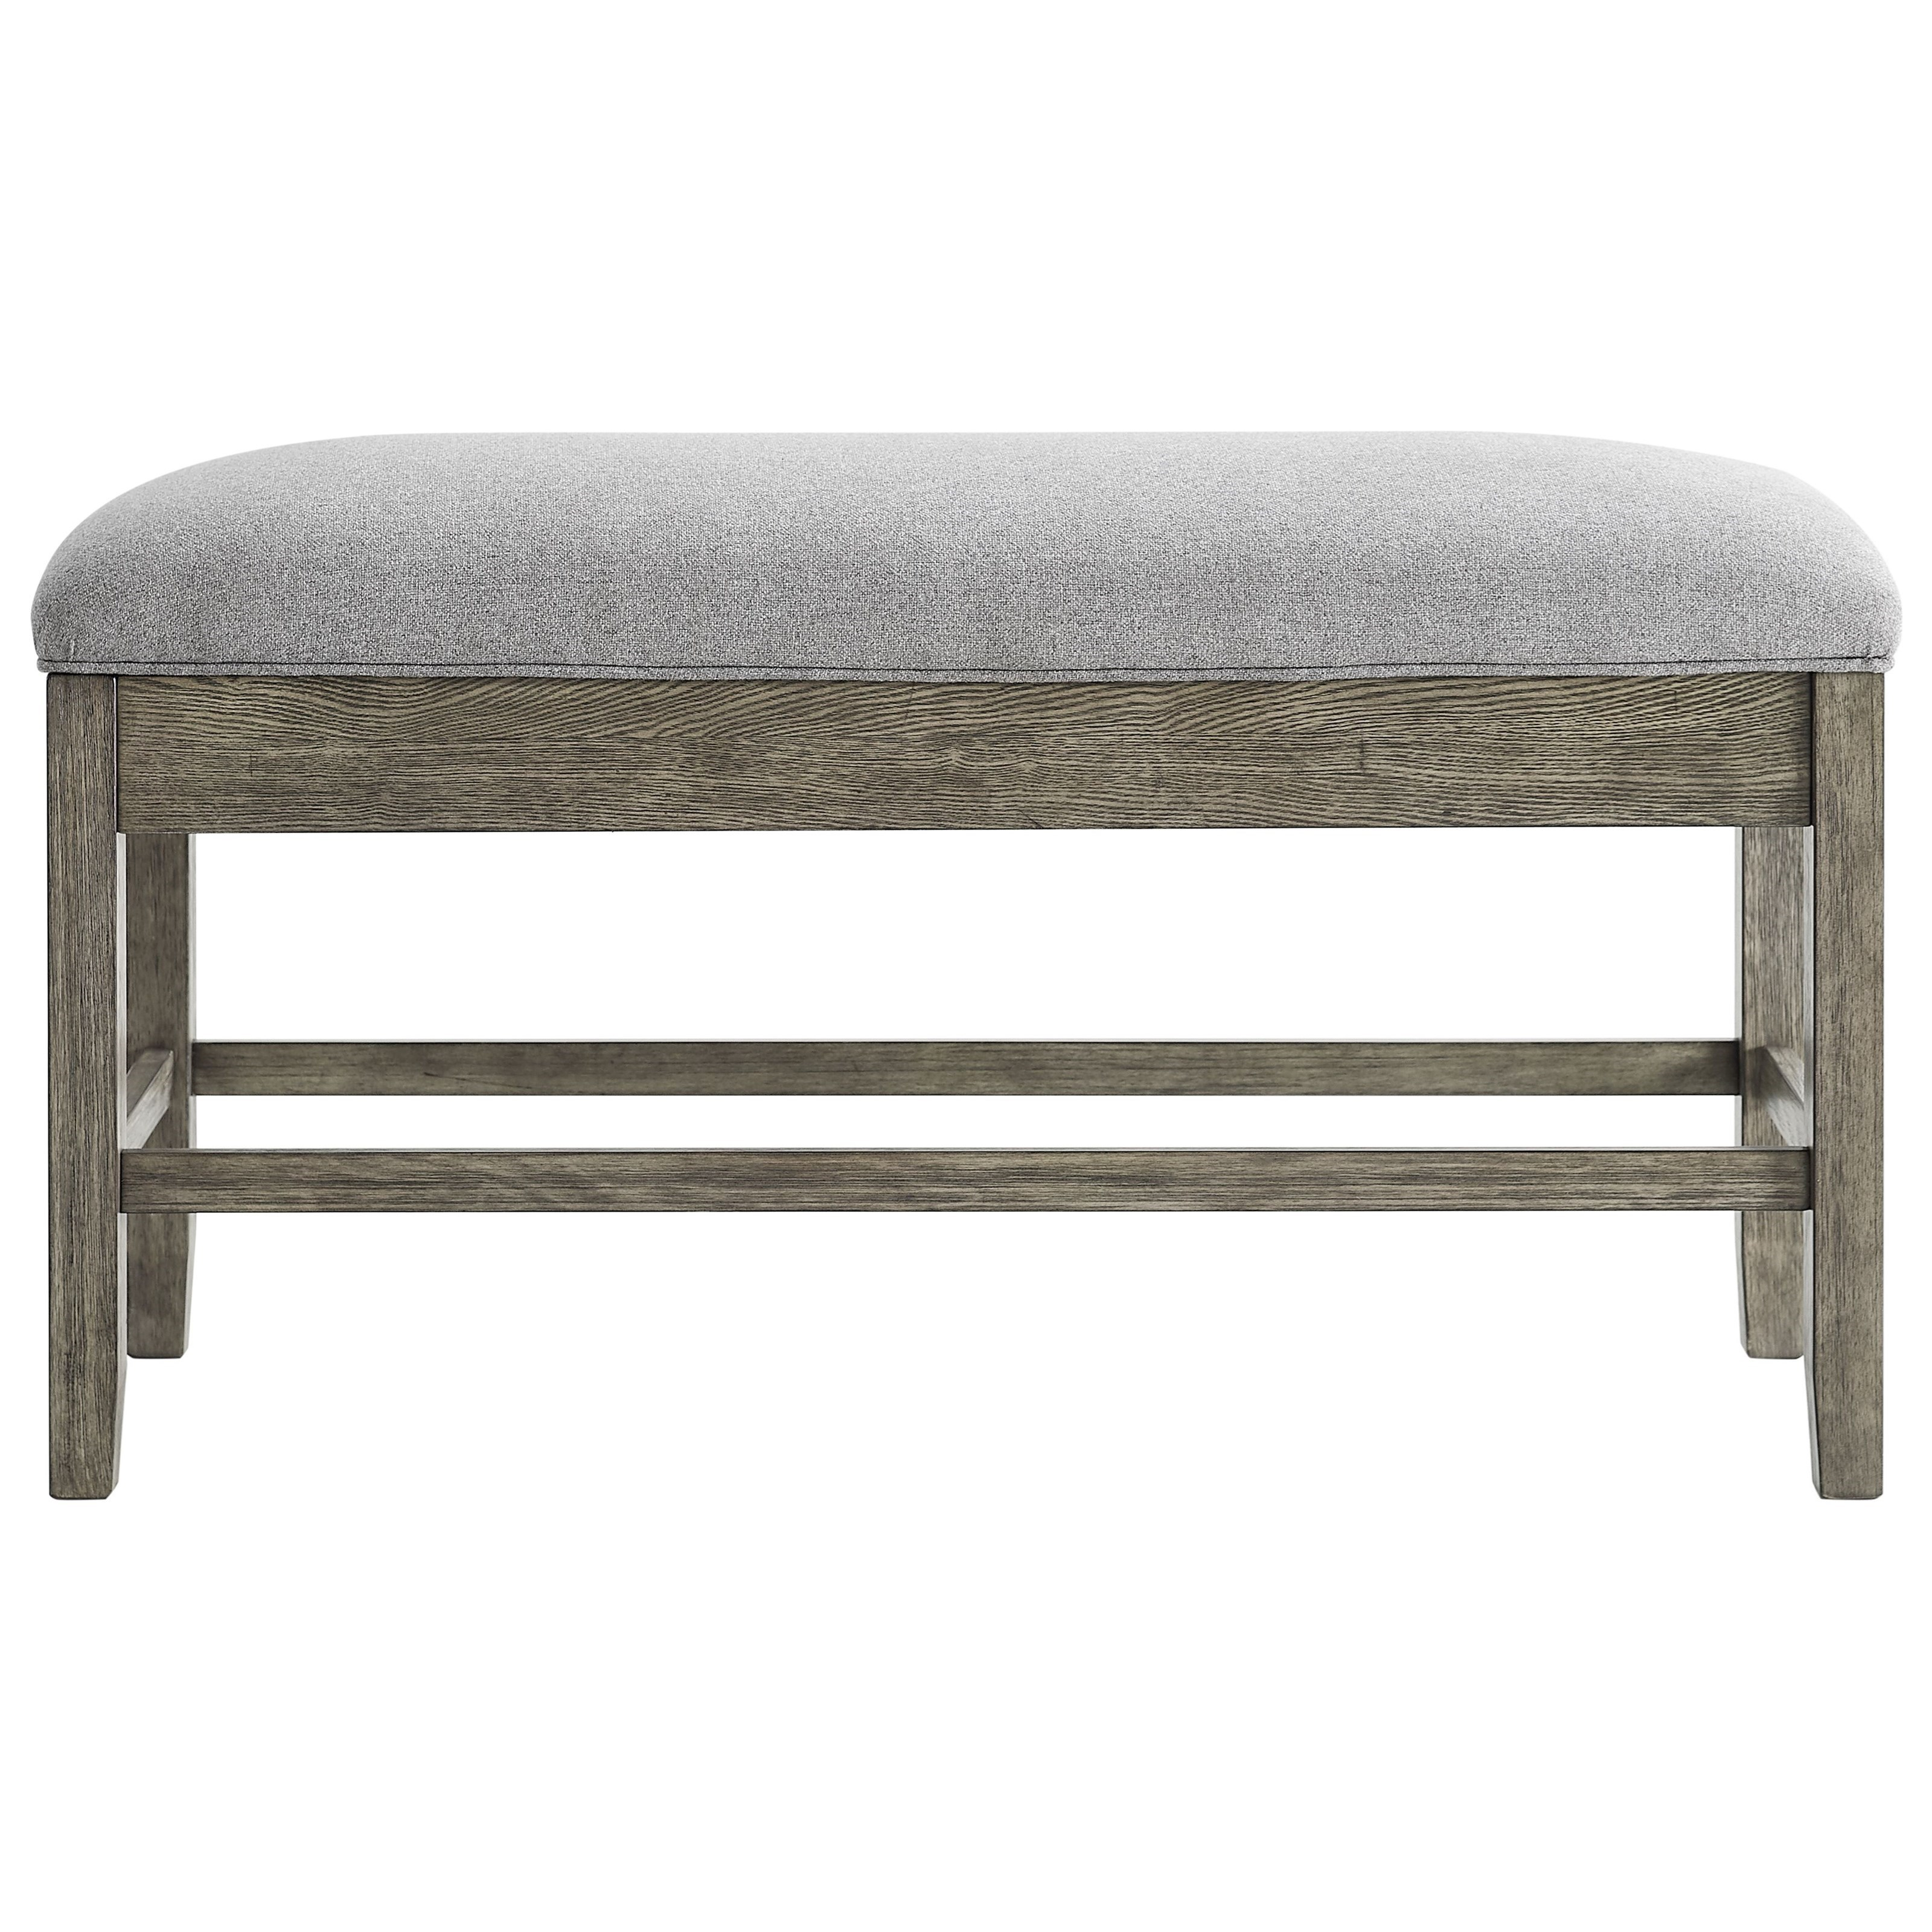 Grayson Counter Height Storage Bench by Steve Silver at Walker's Furniture